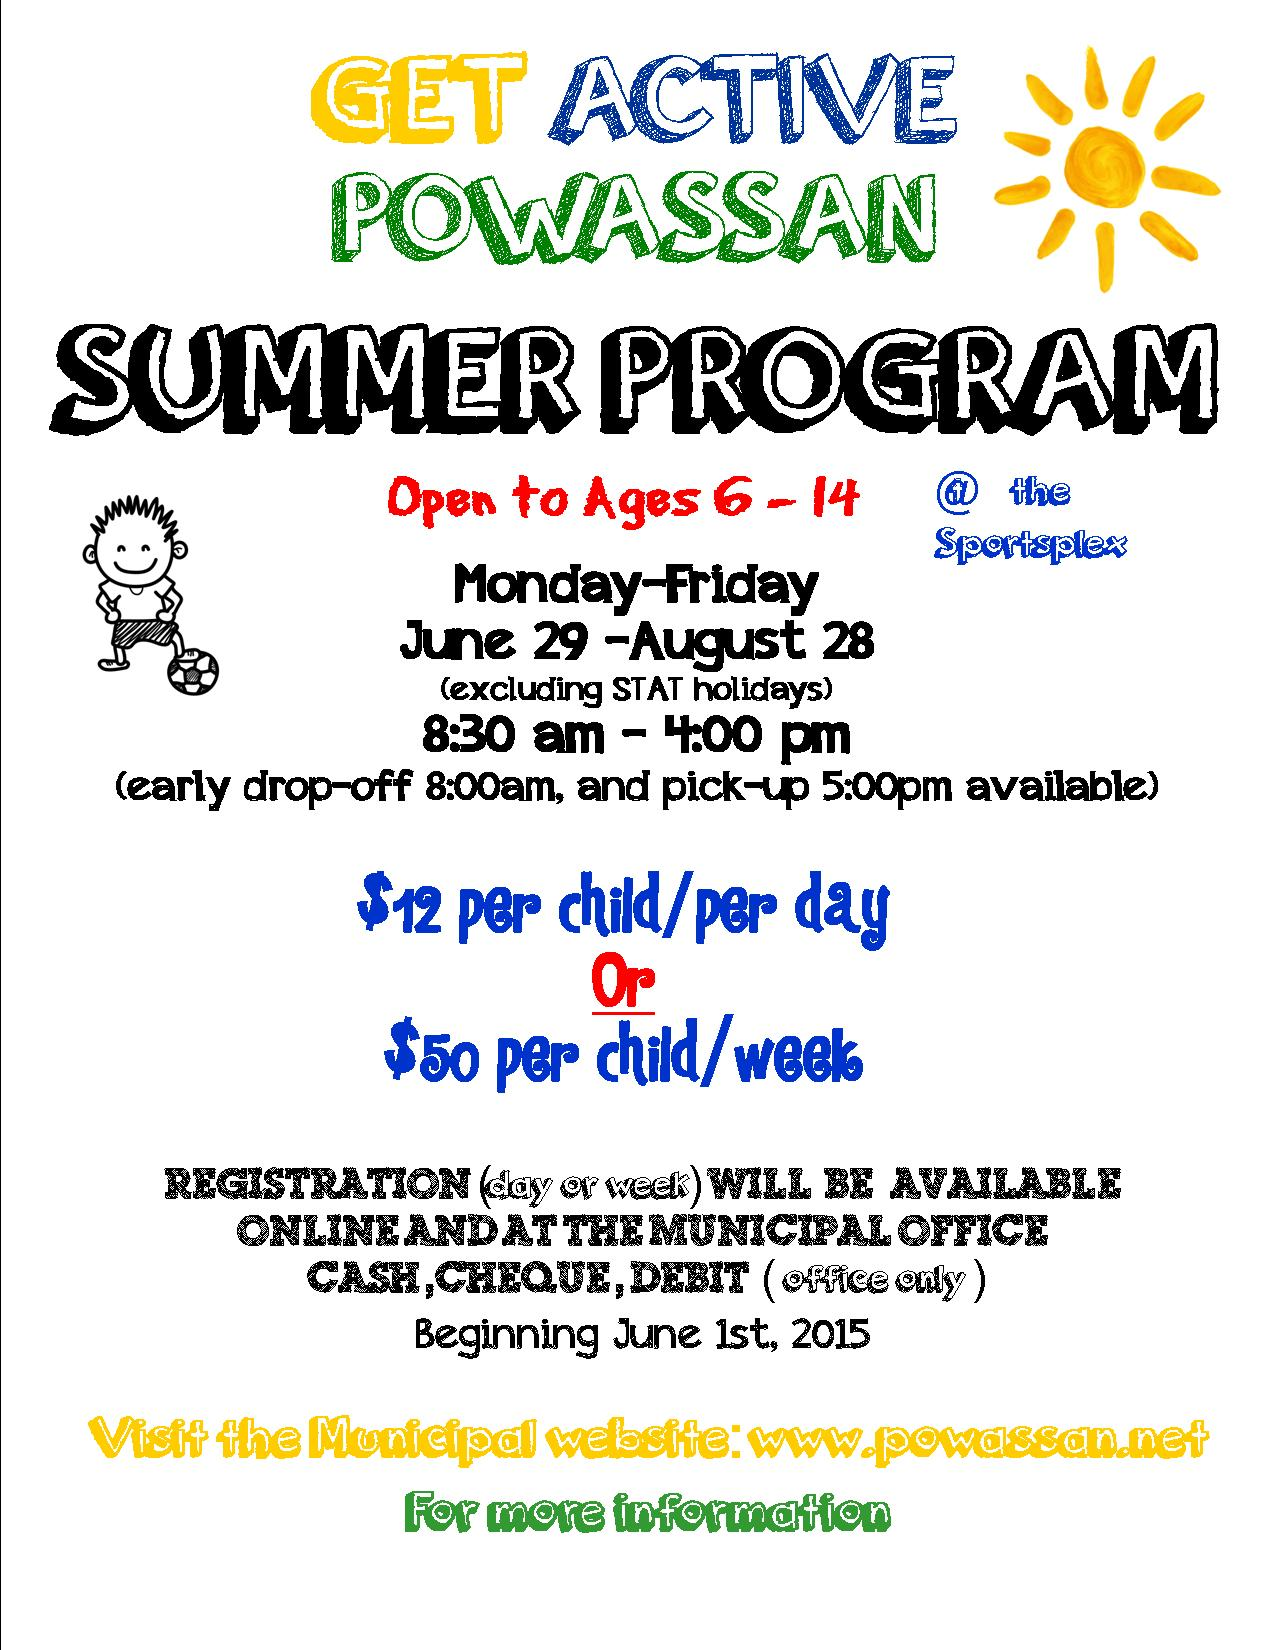 GAP Summer Program 2015